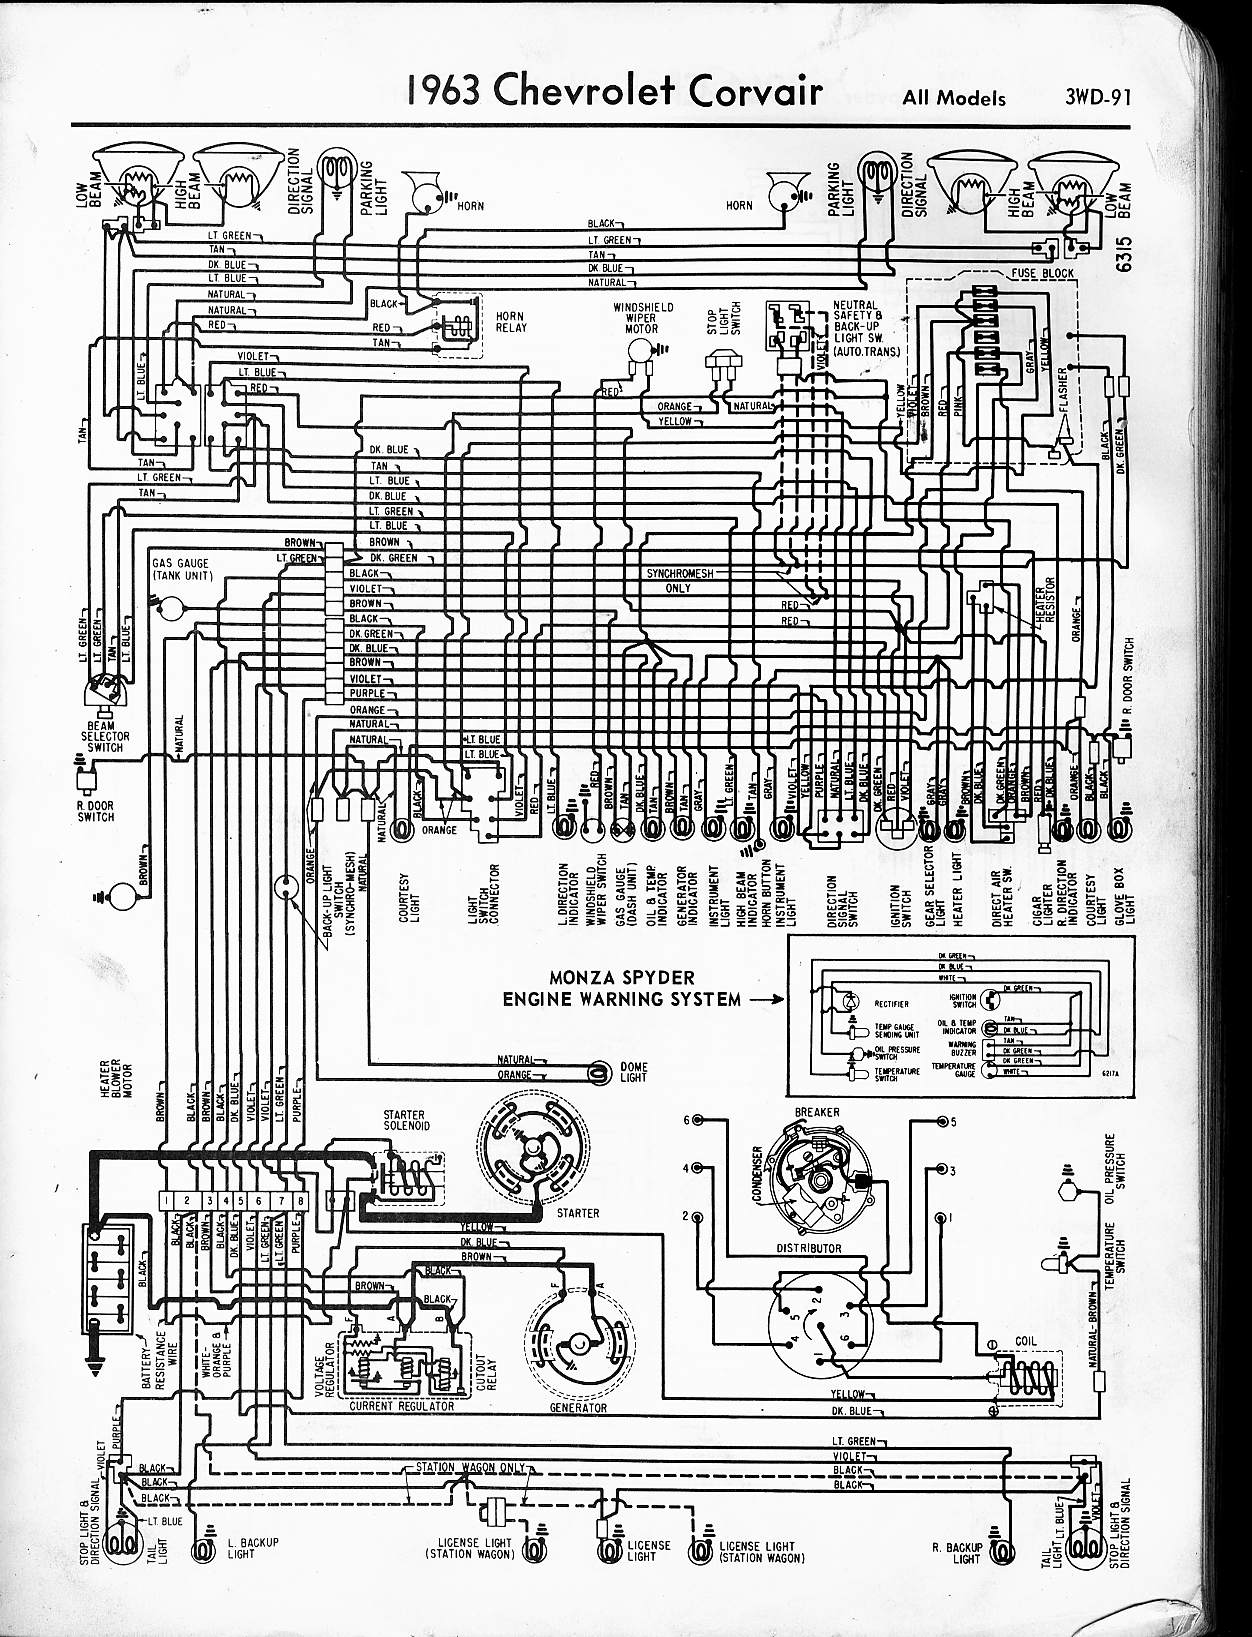 hight resolution of 1963 corvair wiring diagram free wiring diagram for you u2022 1966 chevrolet corvair interior 1966 corvair wiring schematic